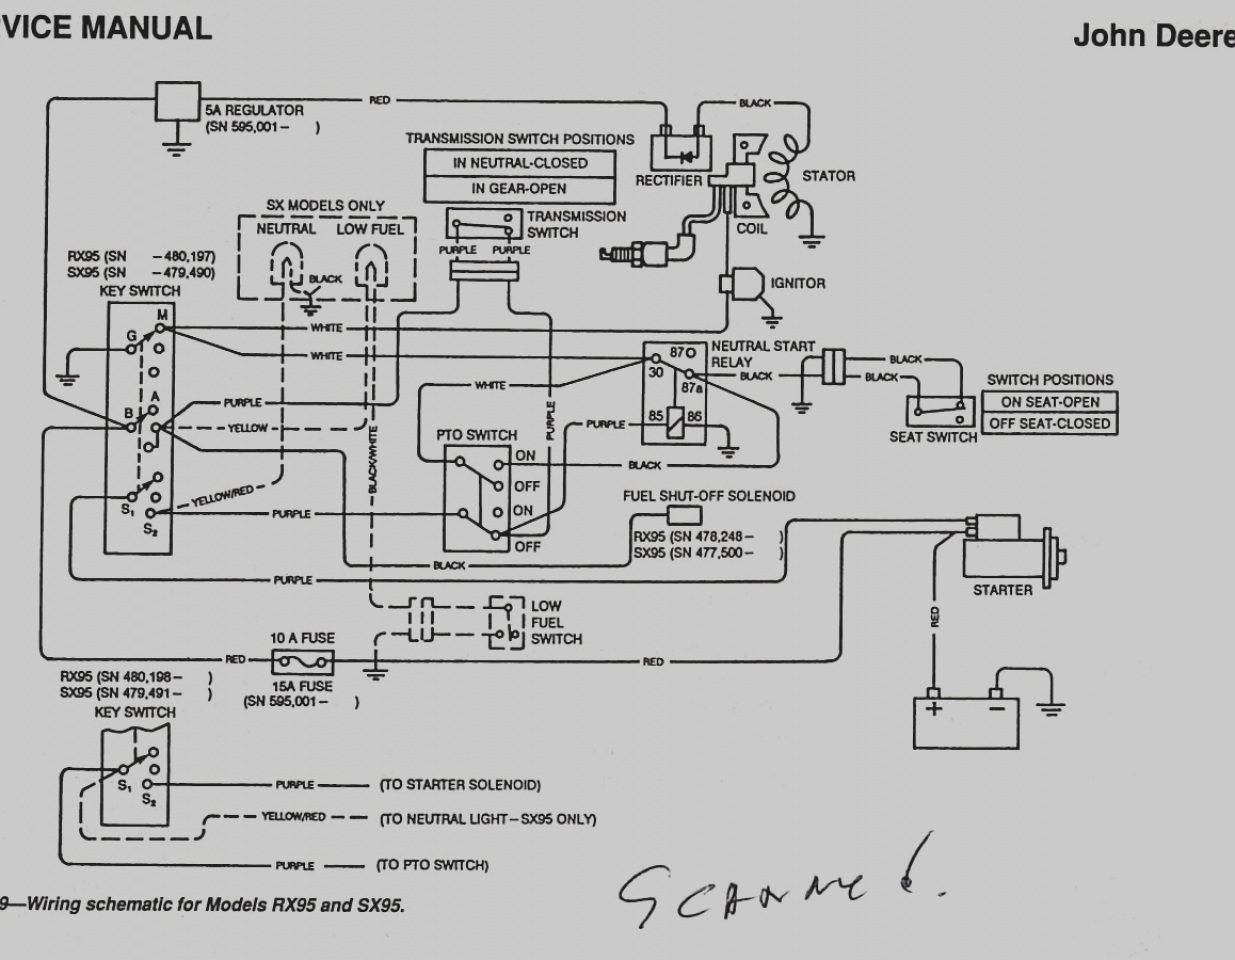 hight resolution of john deere l110 wiring diagram 27 collection john deere sabre wiring diagram stunning for image